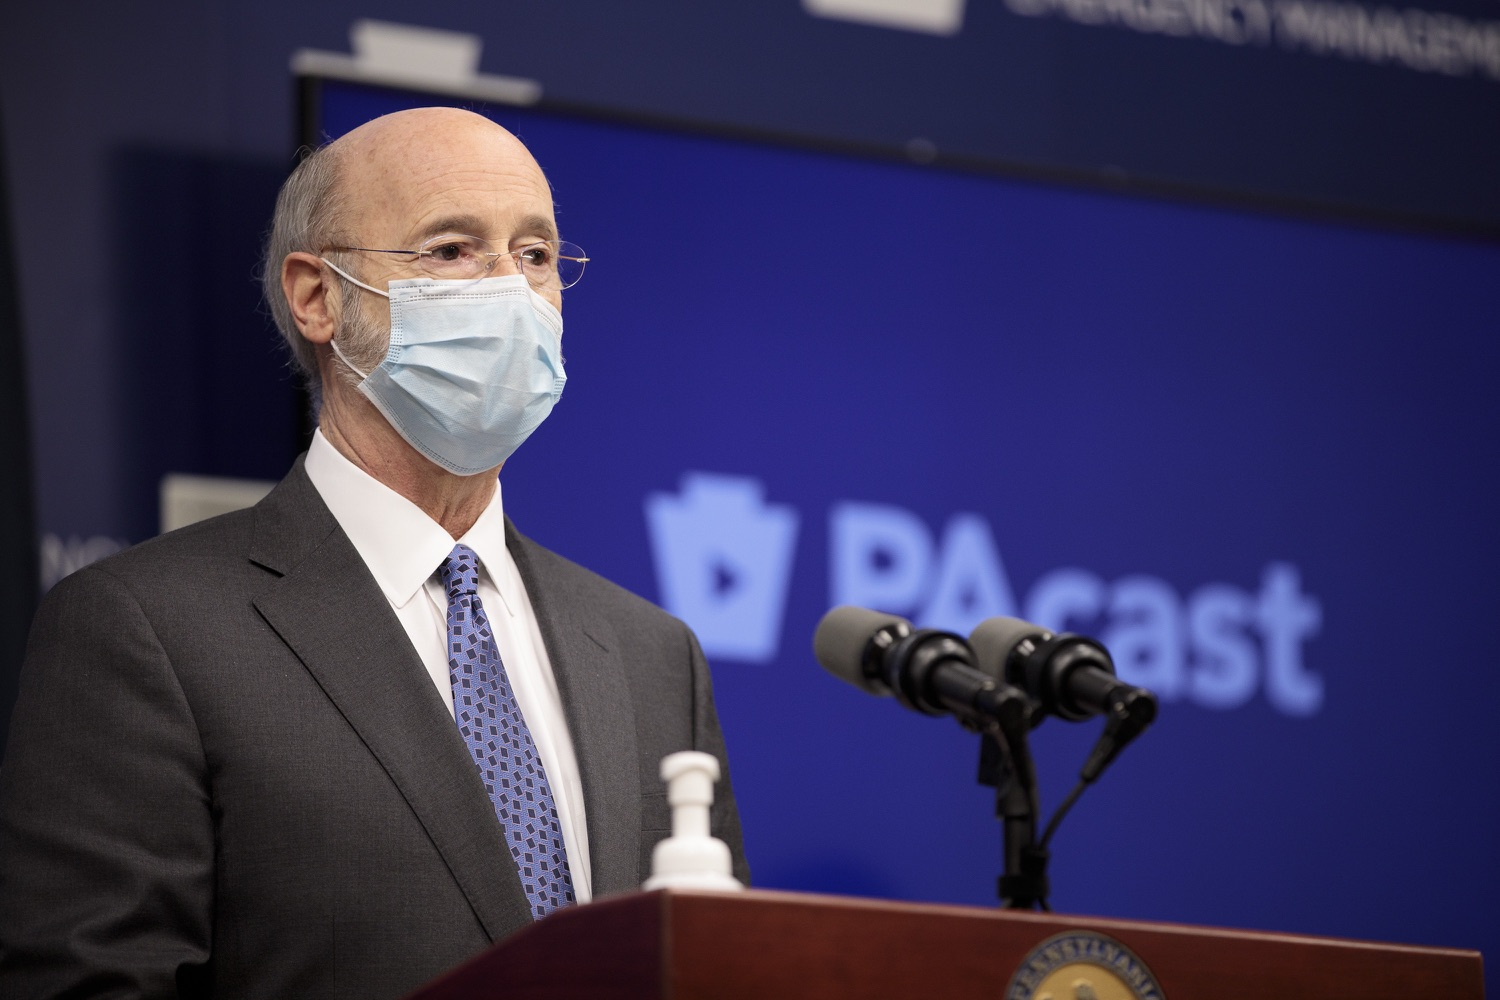 "<a href=""https://filesource.wostreaming.net/commonwealthofpa/photo/18472_gov_vaccine_dz_12.jpg"" target=""_blank"">⇣ Download Photo<br></a>Pennsylvania Governor Tom Wolf speaks at the press conference.  The commonwealths COVID-19 vaccination distribution plan was designed to be fluid and flexible to meet guidance and recommendations from the federal government. Today, Governor Tom Wolf and Secretary of Health Dr. Rachel Levine announced the fourth version of the plan, detailing the updates and how the state is working to ensure safe, swift implementation. Harrisburg, PA  January 8, 2021"